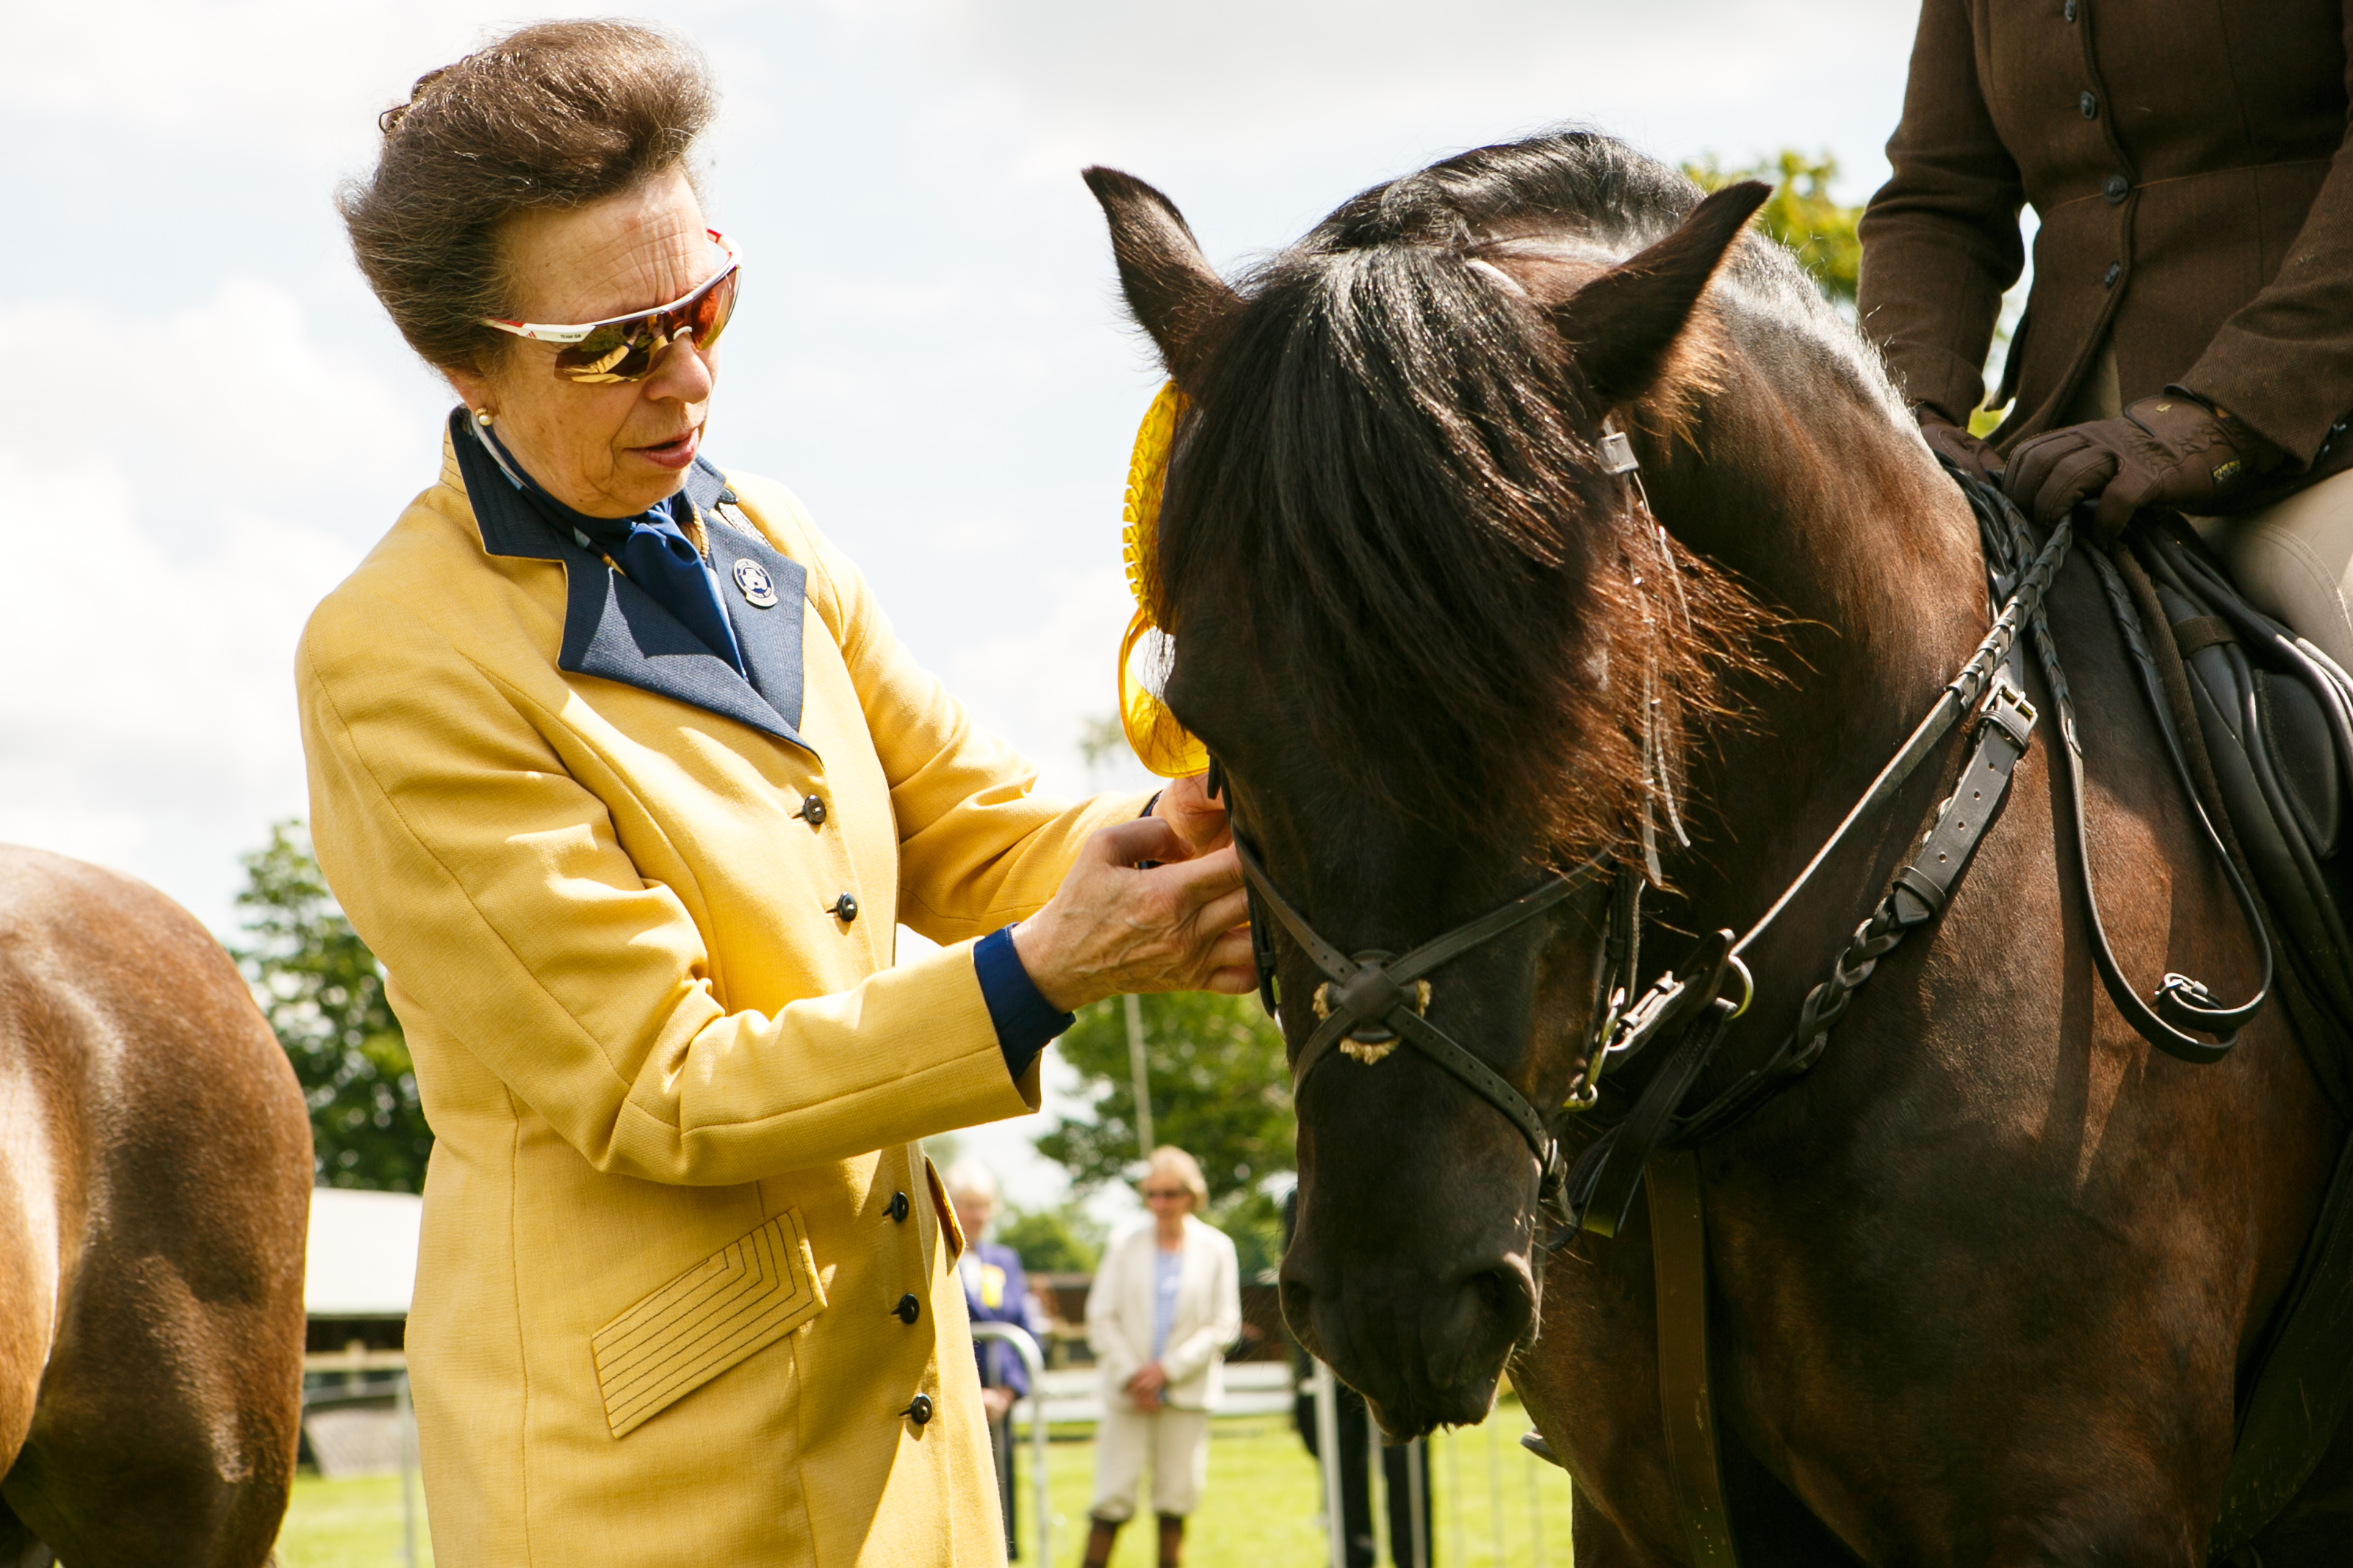 The Princess Royal at the Three Counties Show